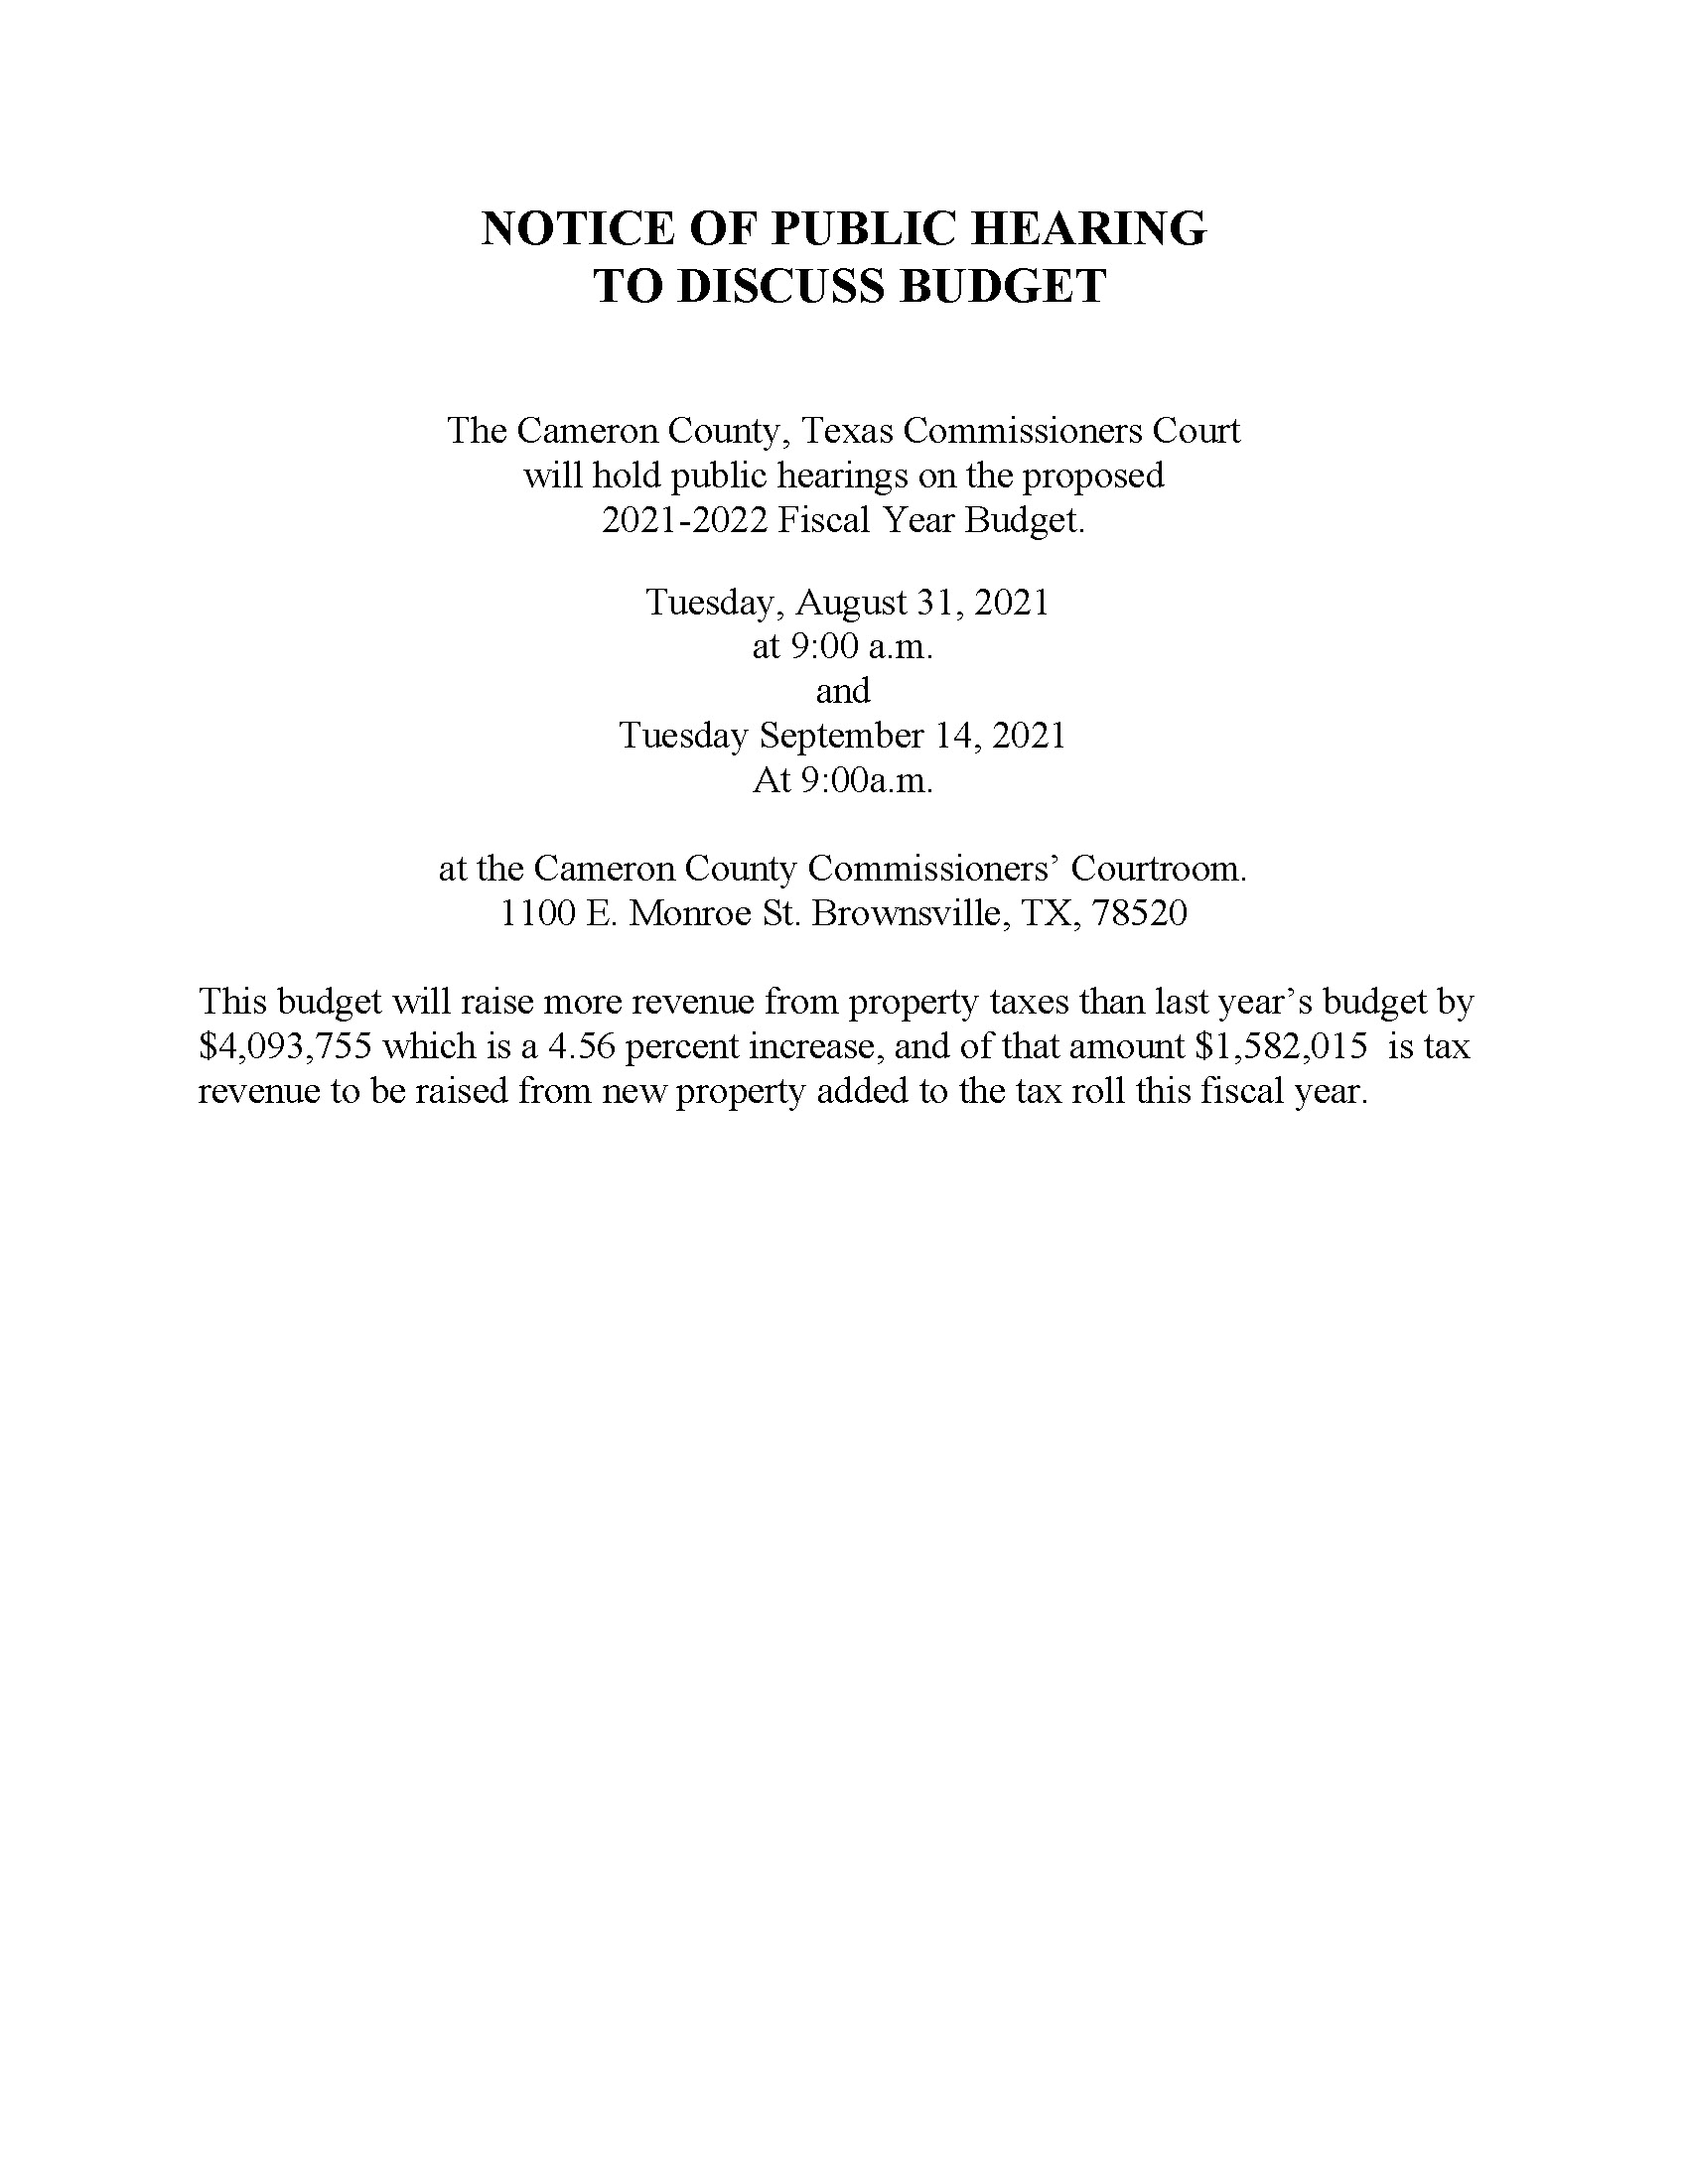 NOTICE OF PUBLIC HEARING BUDGET